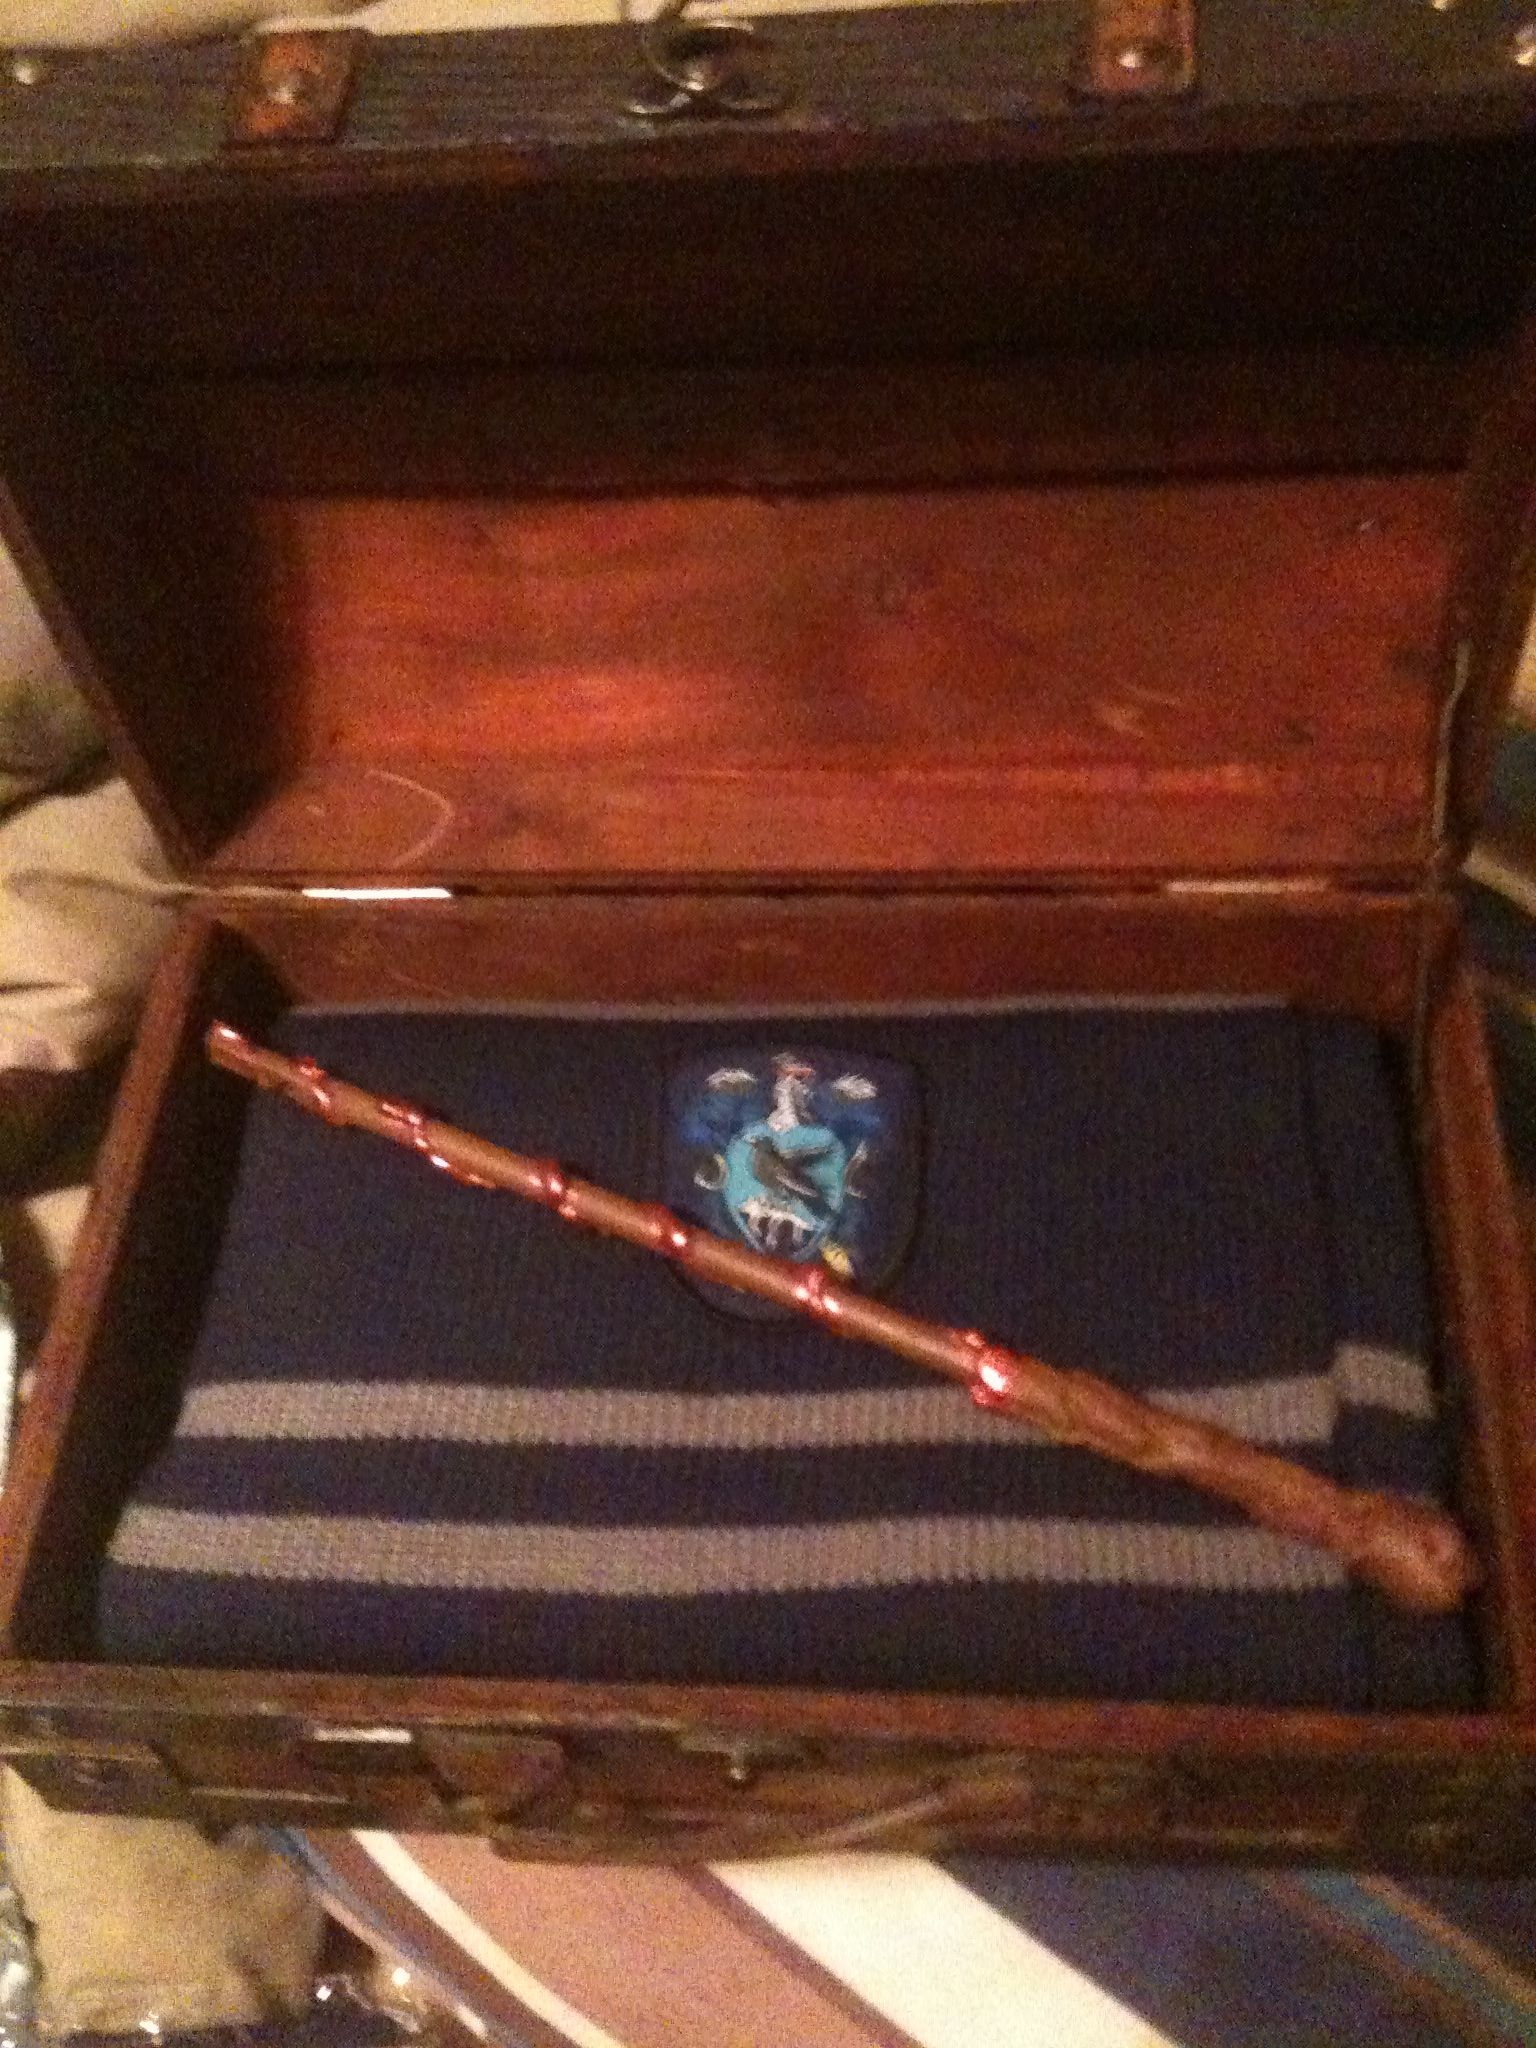 DIY Harry Potter gift set. Small chest, put in it the desired house swag, a custom wand, as well as other items like ticket to platform 9 3/4, Hogwarts acceptance letter, or any thing else of the like! Wand was made with craft wood, hot glue, and acrylic paint.